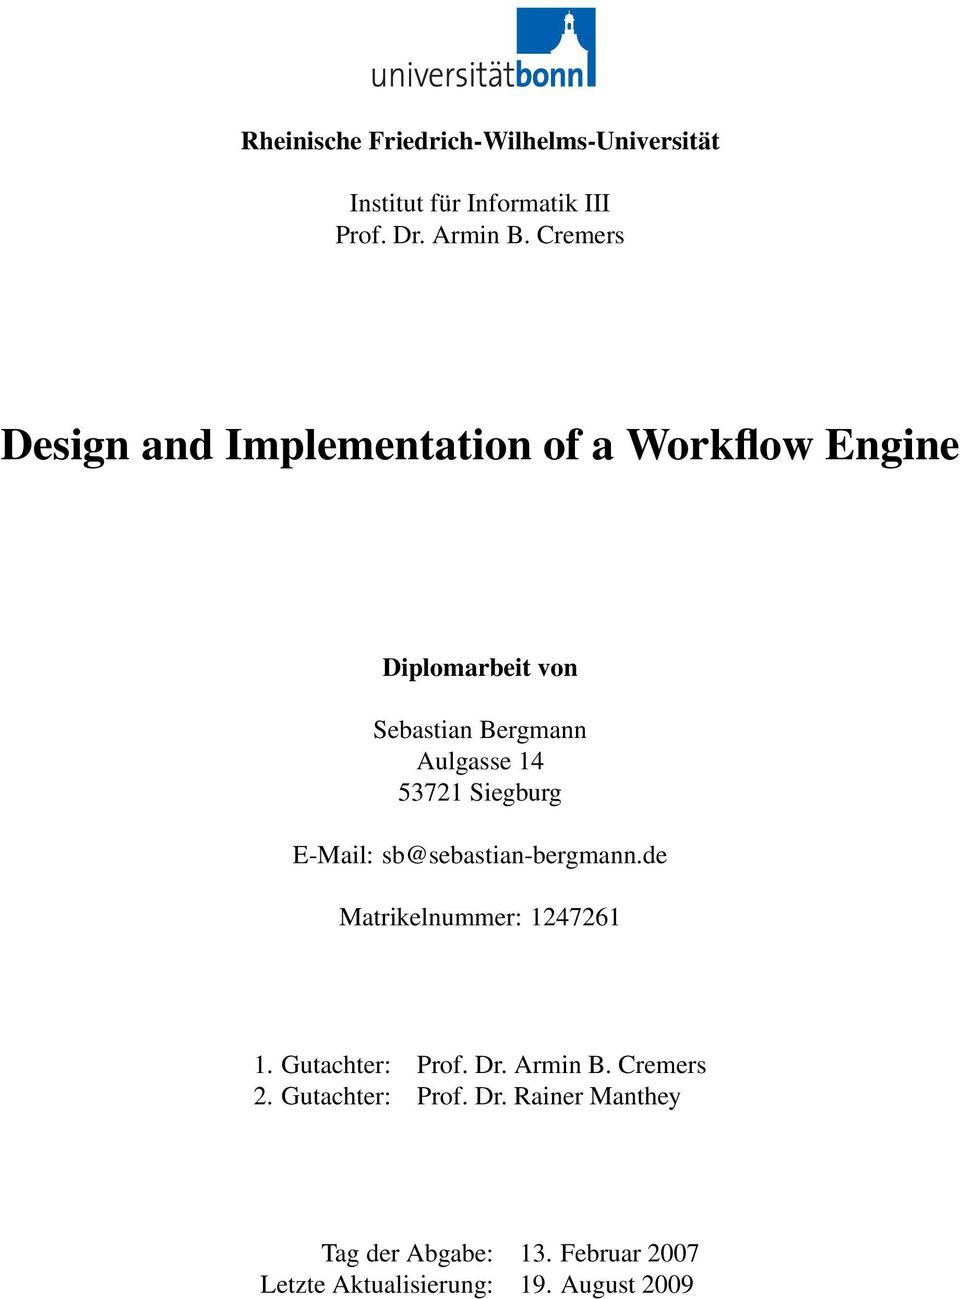 Design and Implementation of a Workflow Engine - PDF